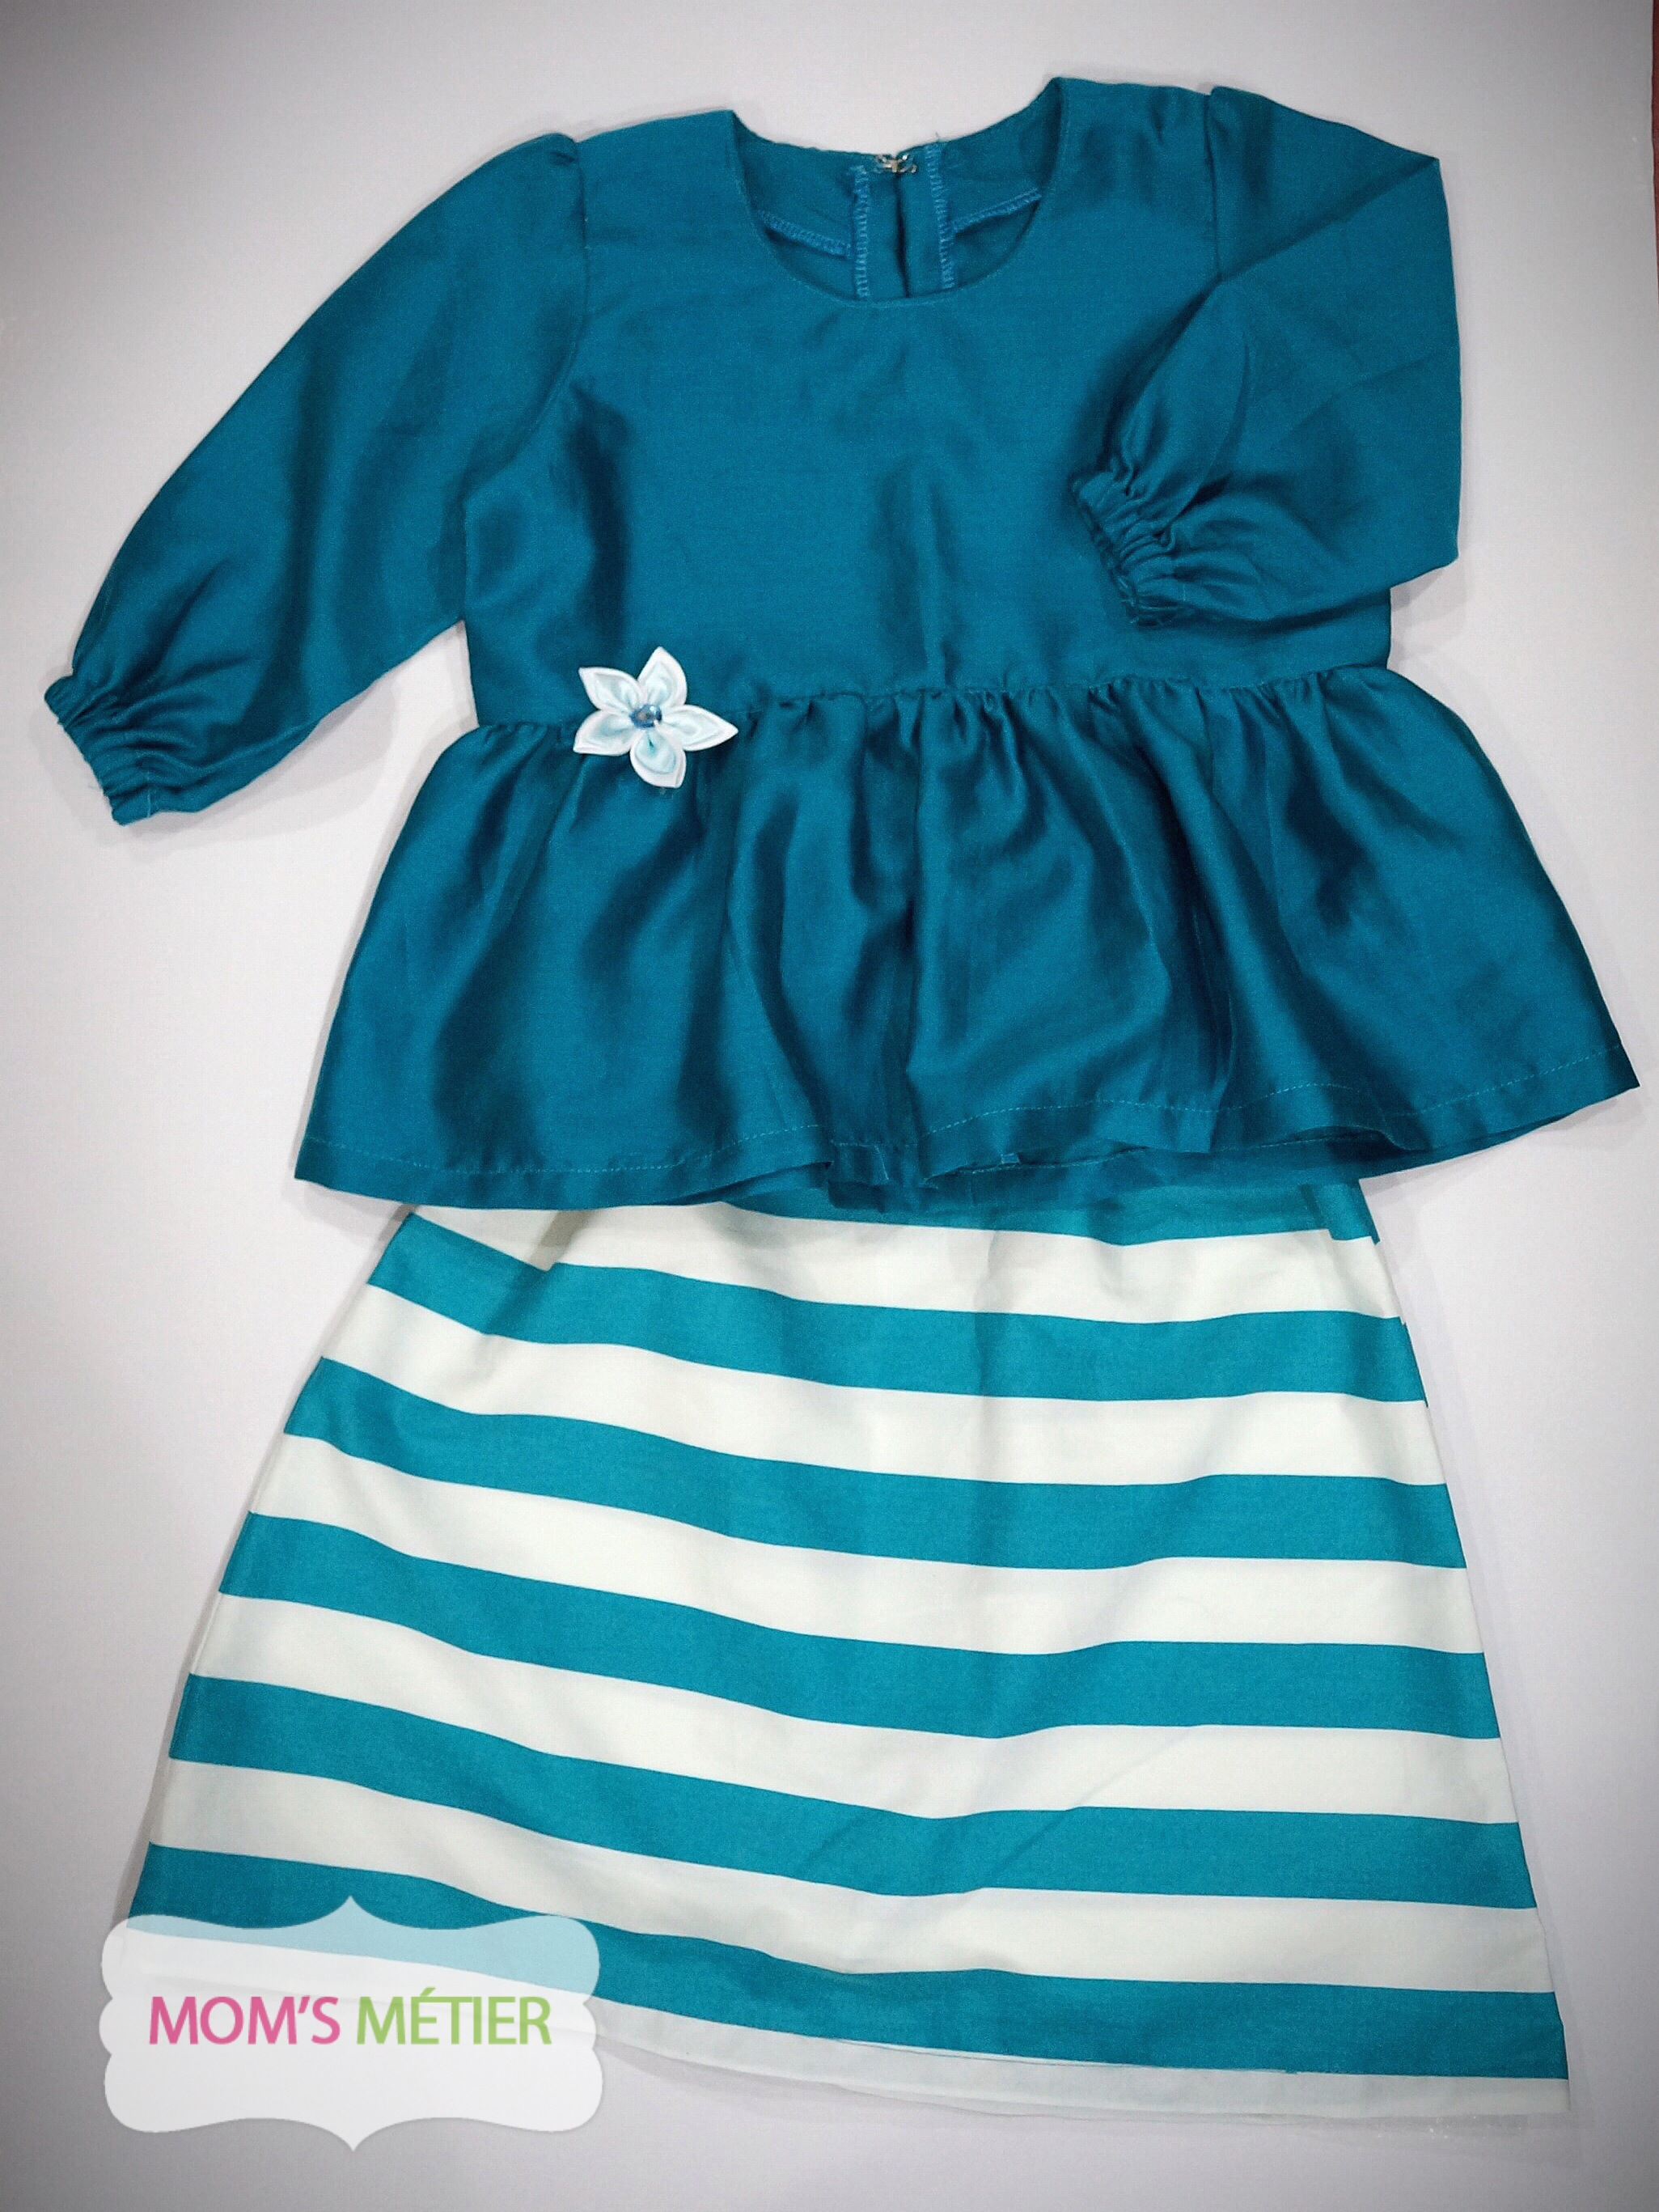 DARK TURQUOISE STRIPES